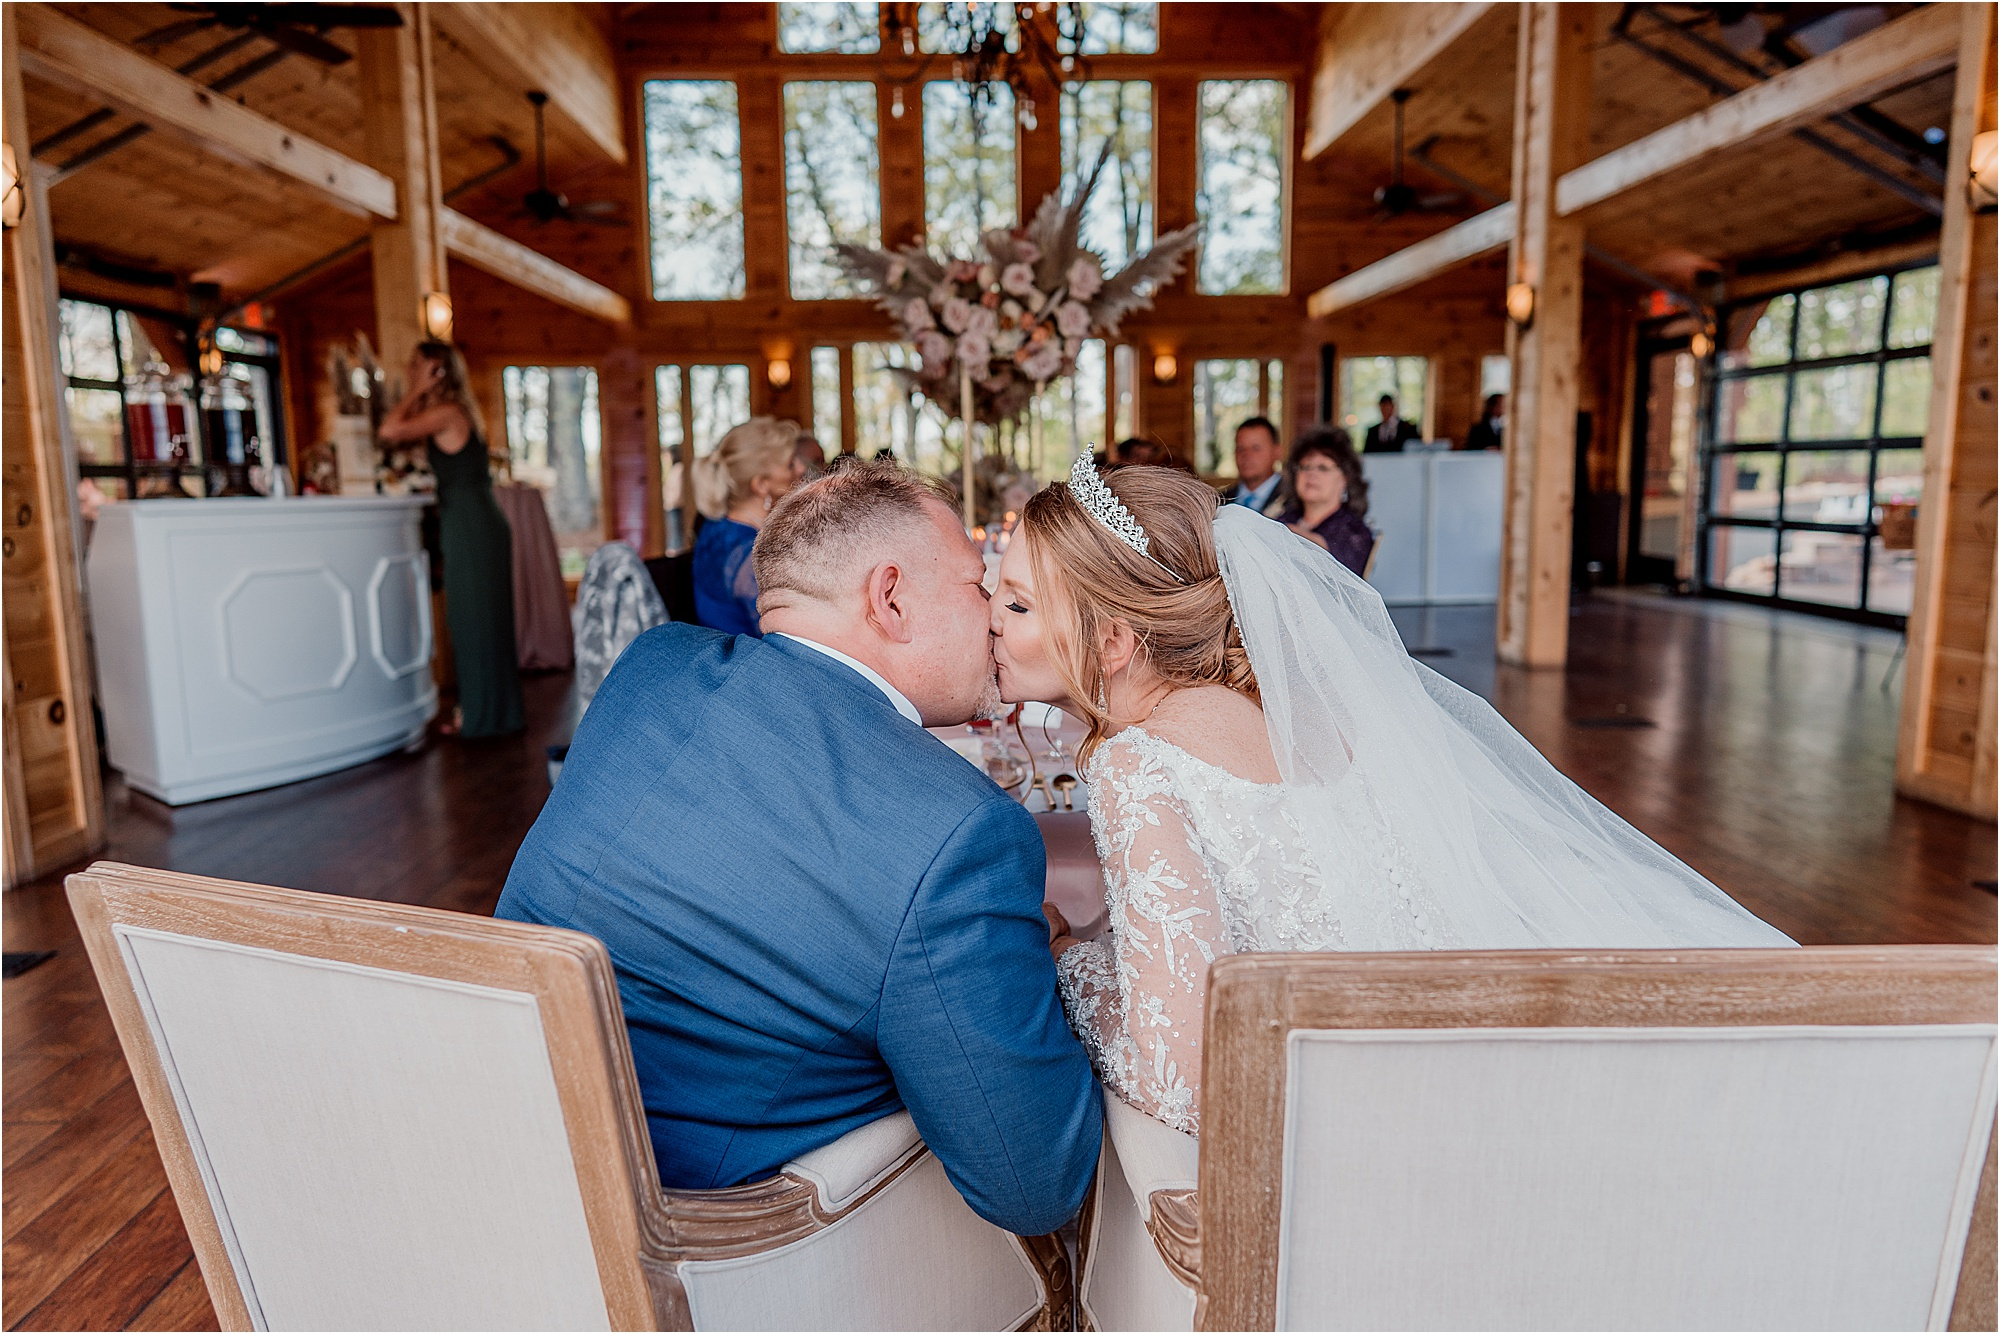 bride and groom kiss while sitting in wedding chairs